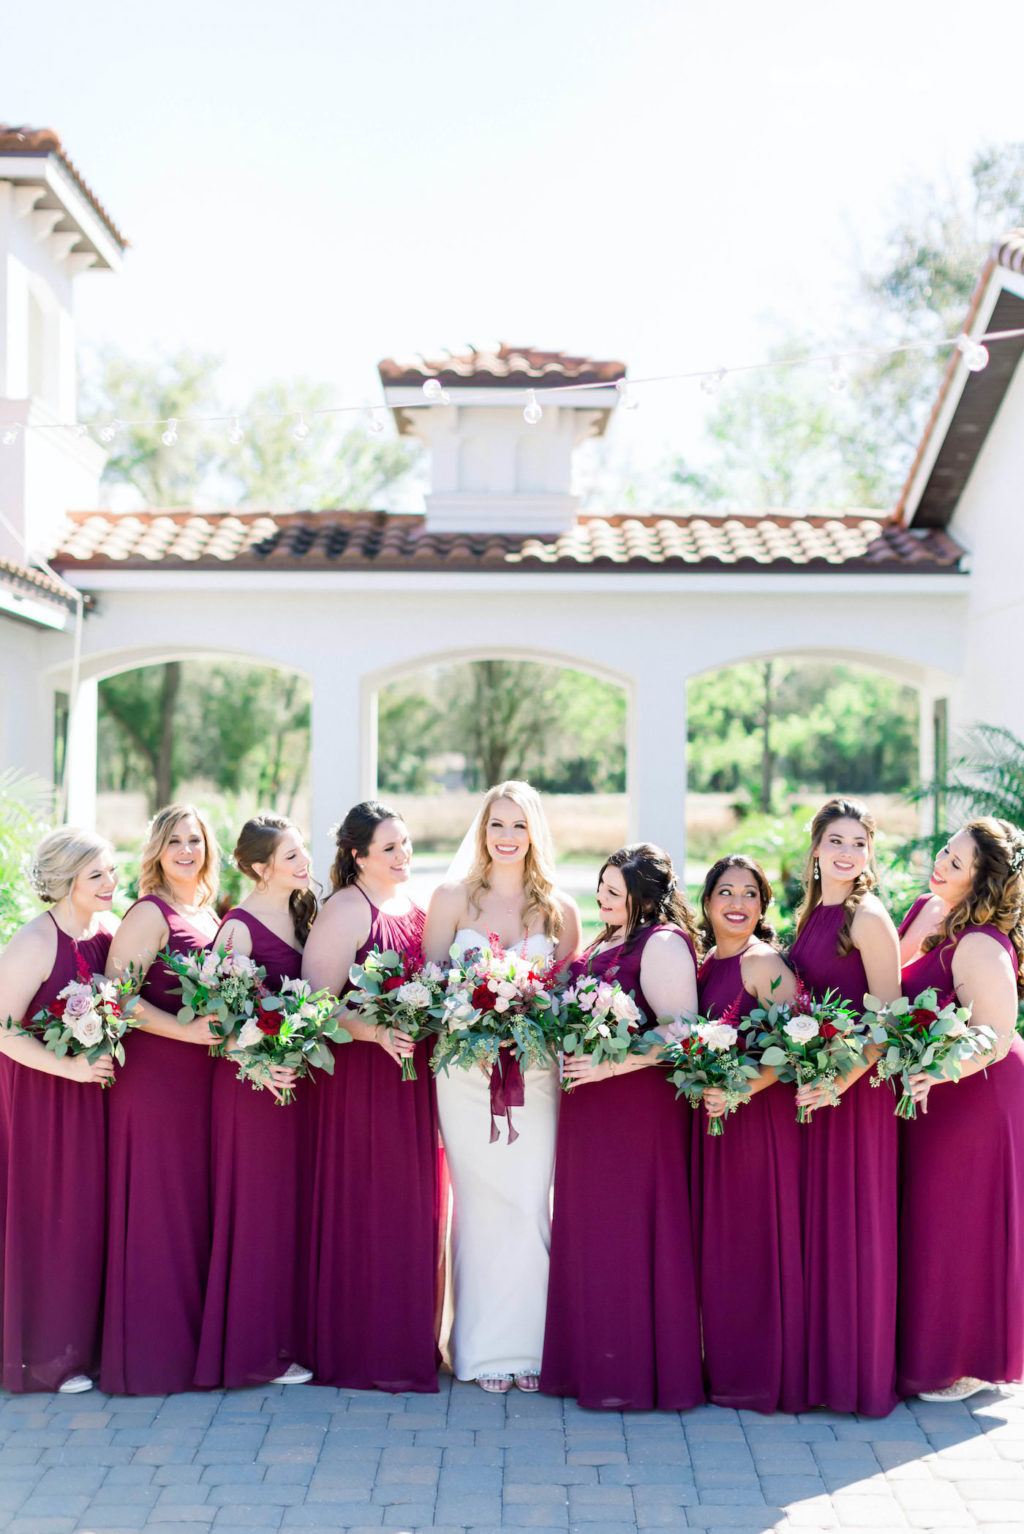 Burgundy Bordeaux Wine Deep Red Long Chiffon Bridesmaid Dresses | Outdoor Florida Wedding Bride and Bridesmaids Portrait | Burgundy and Blush Pink Bridal Bouquet with Roses and Astilbe and Eucalyptus Greenery | Shauna and Jordon Photography